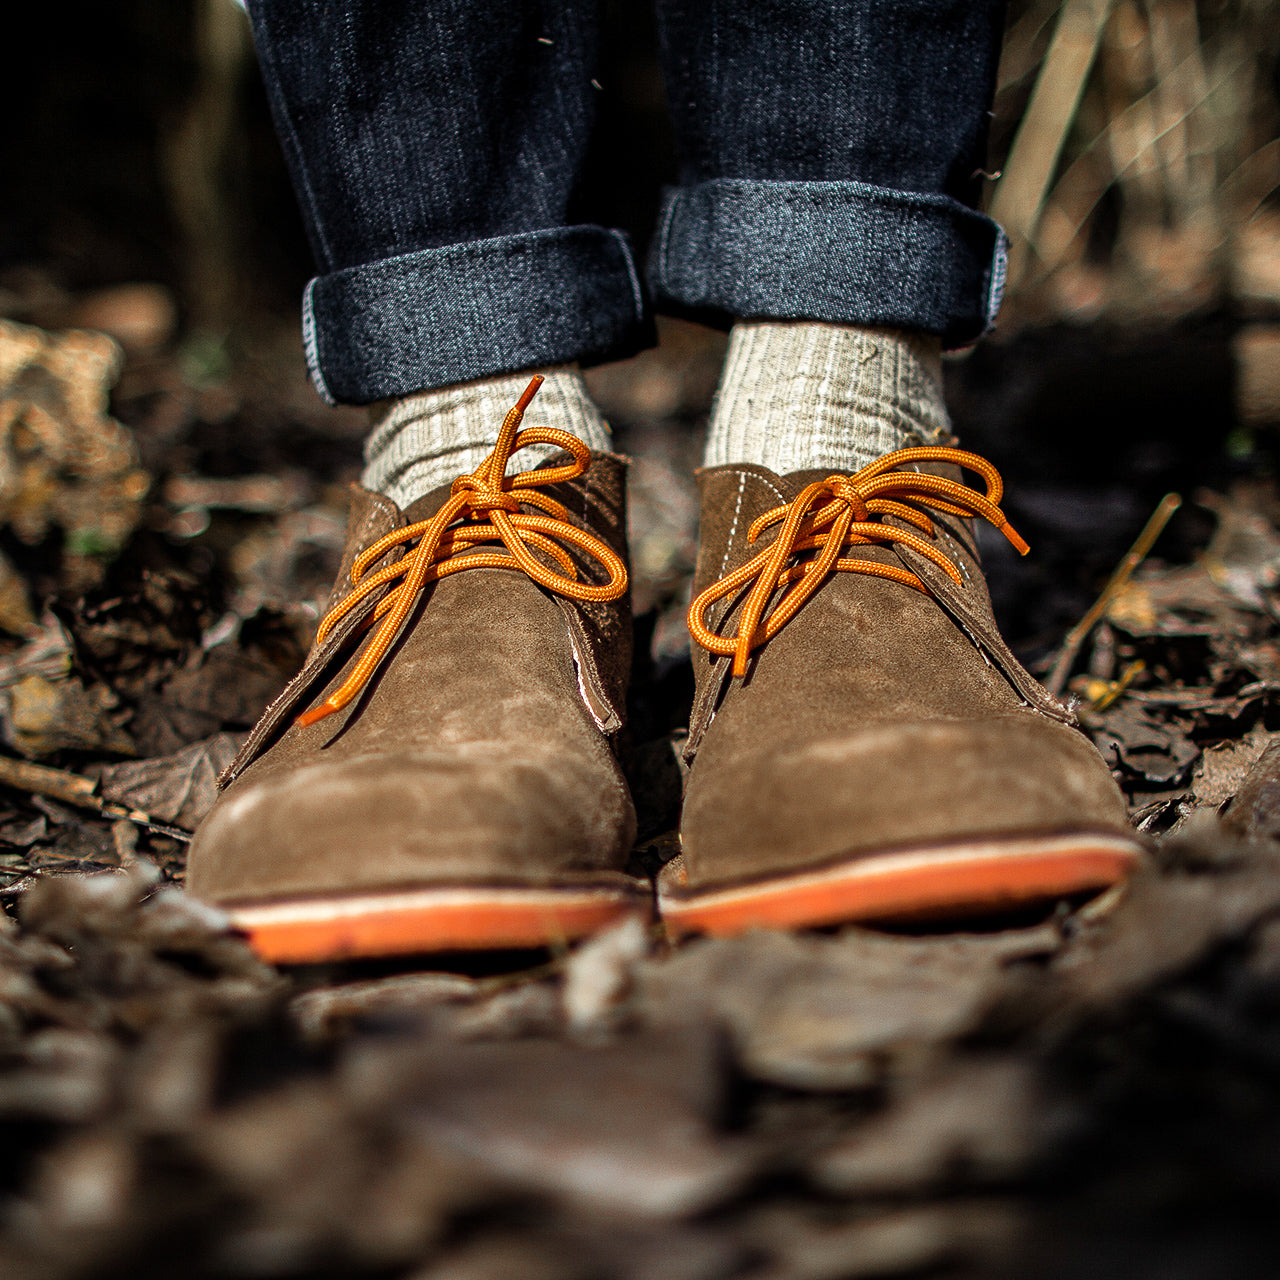 Veldskoen shoes and boots or known as vellies heritage boot ethically and sustainably handcrafted in South Africa sold in united states man wearing rolled up jeans with beige socks and suede veldskoen with ornage laces and orange soles